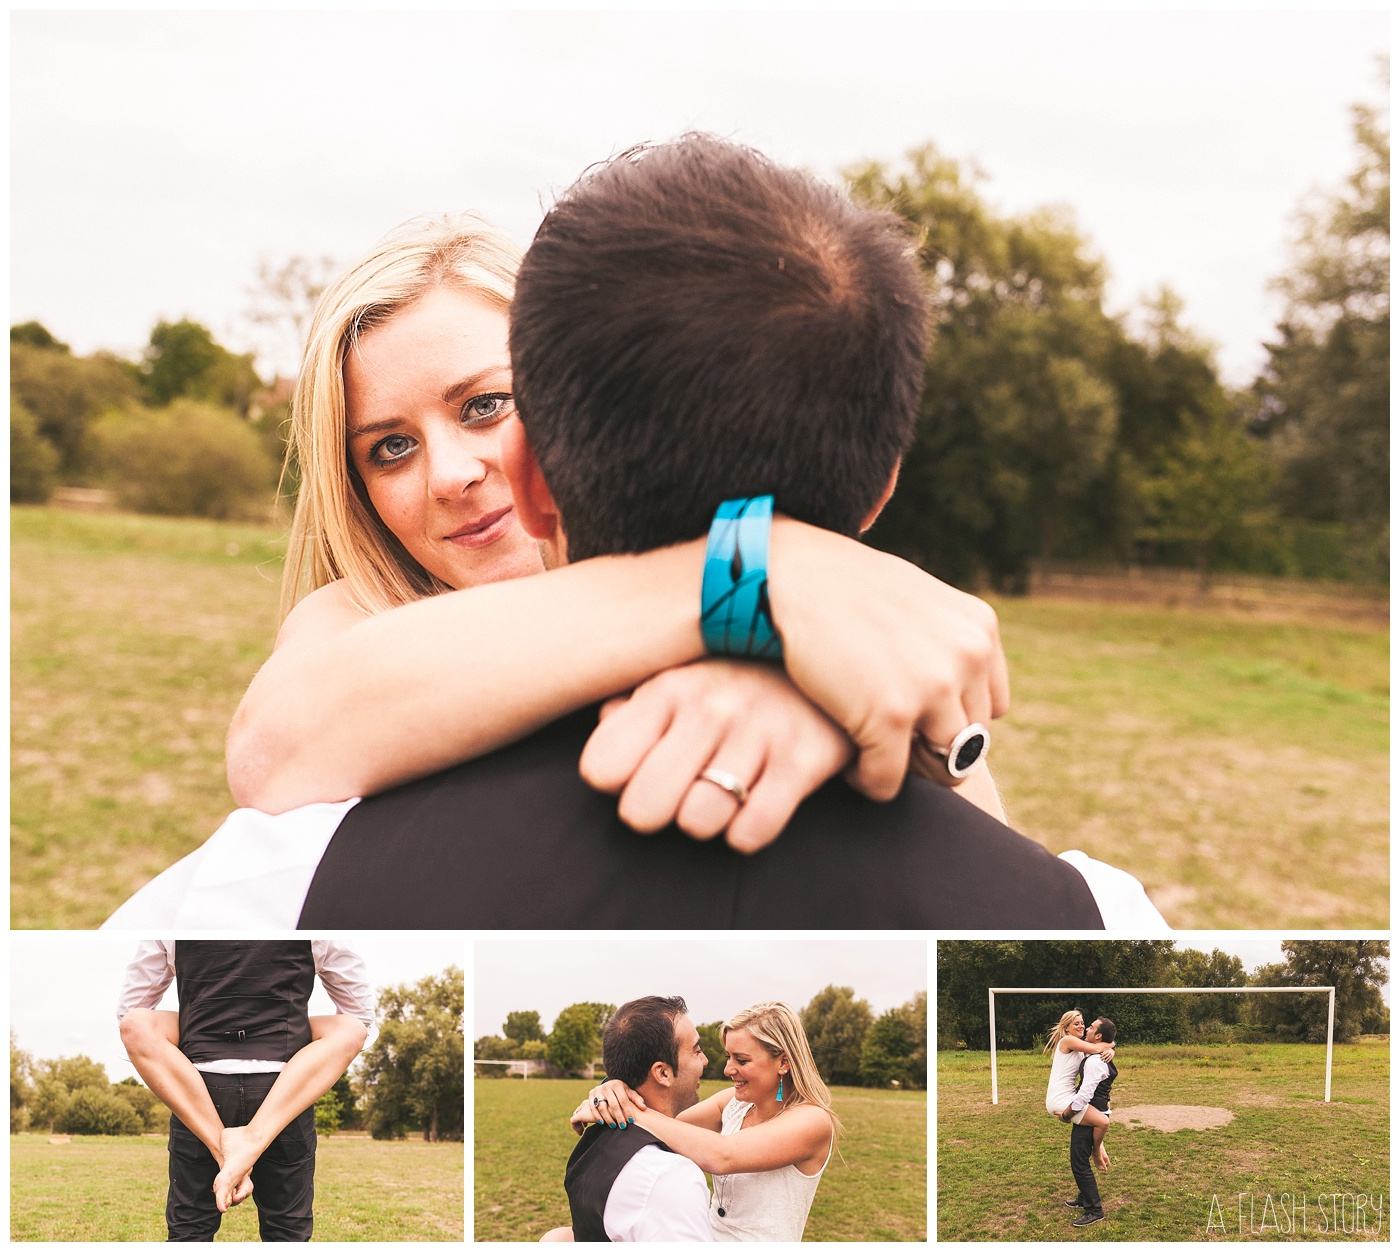 portraits de couple sur terrain de foot